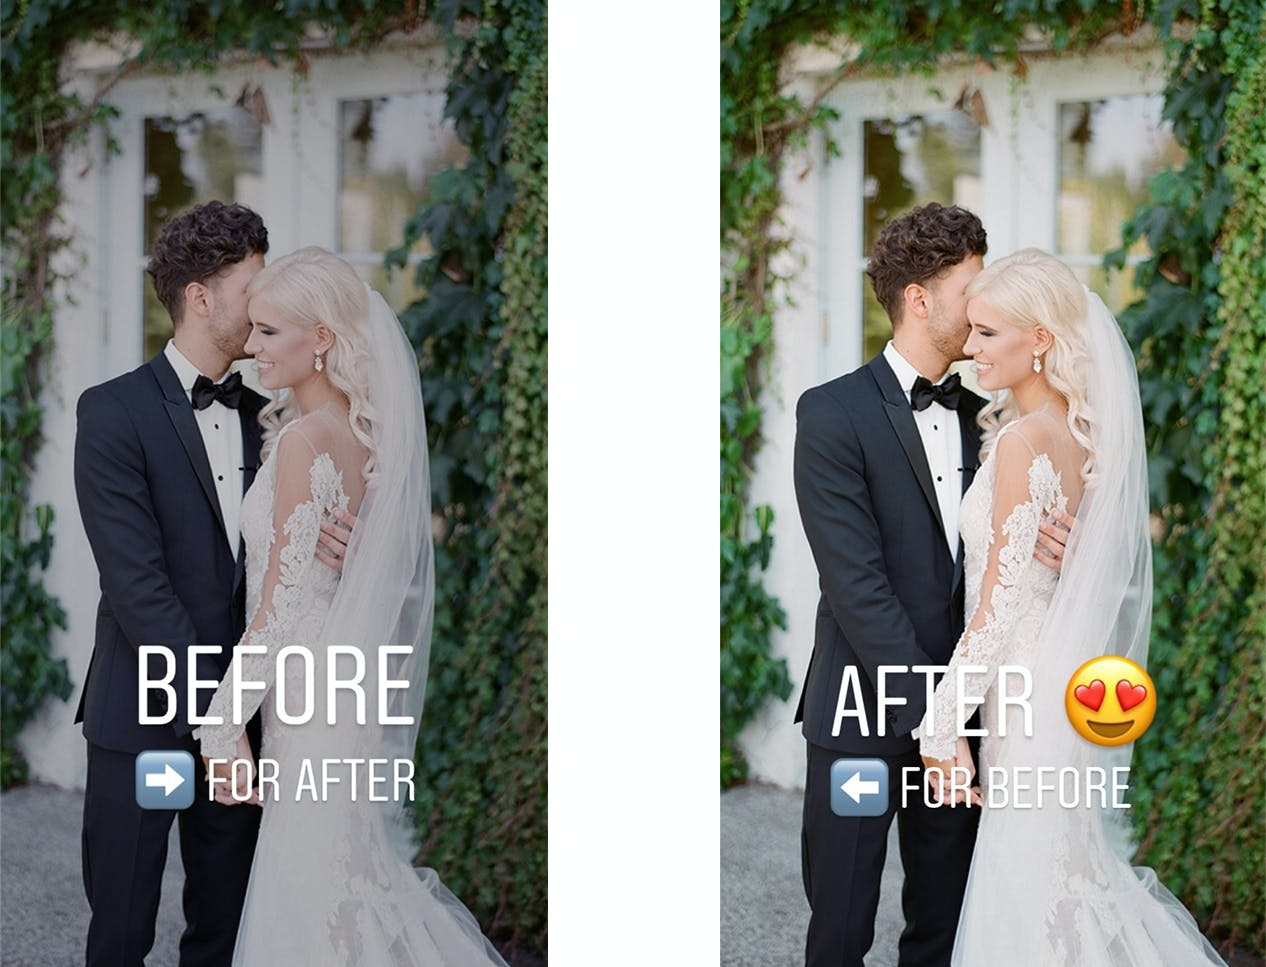 Share before and after editing photos to your Instagram Story to grow your photography business